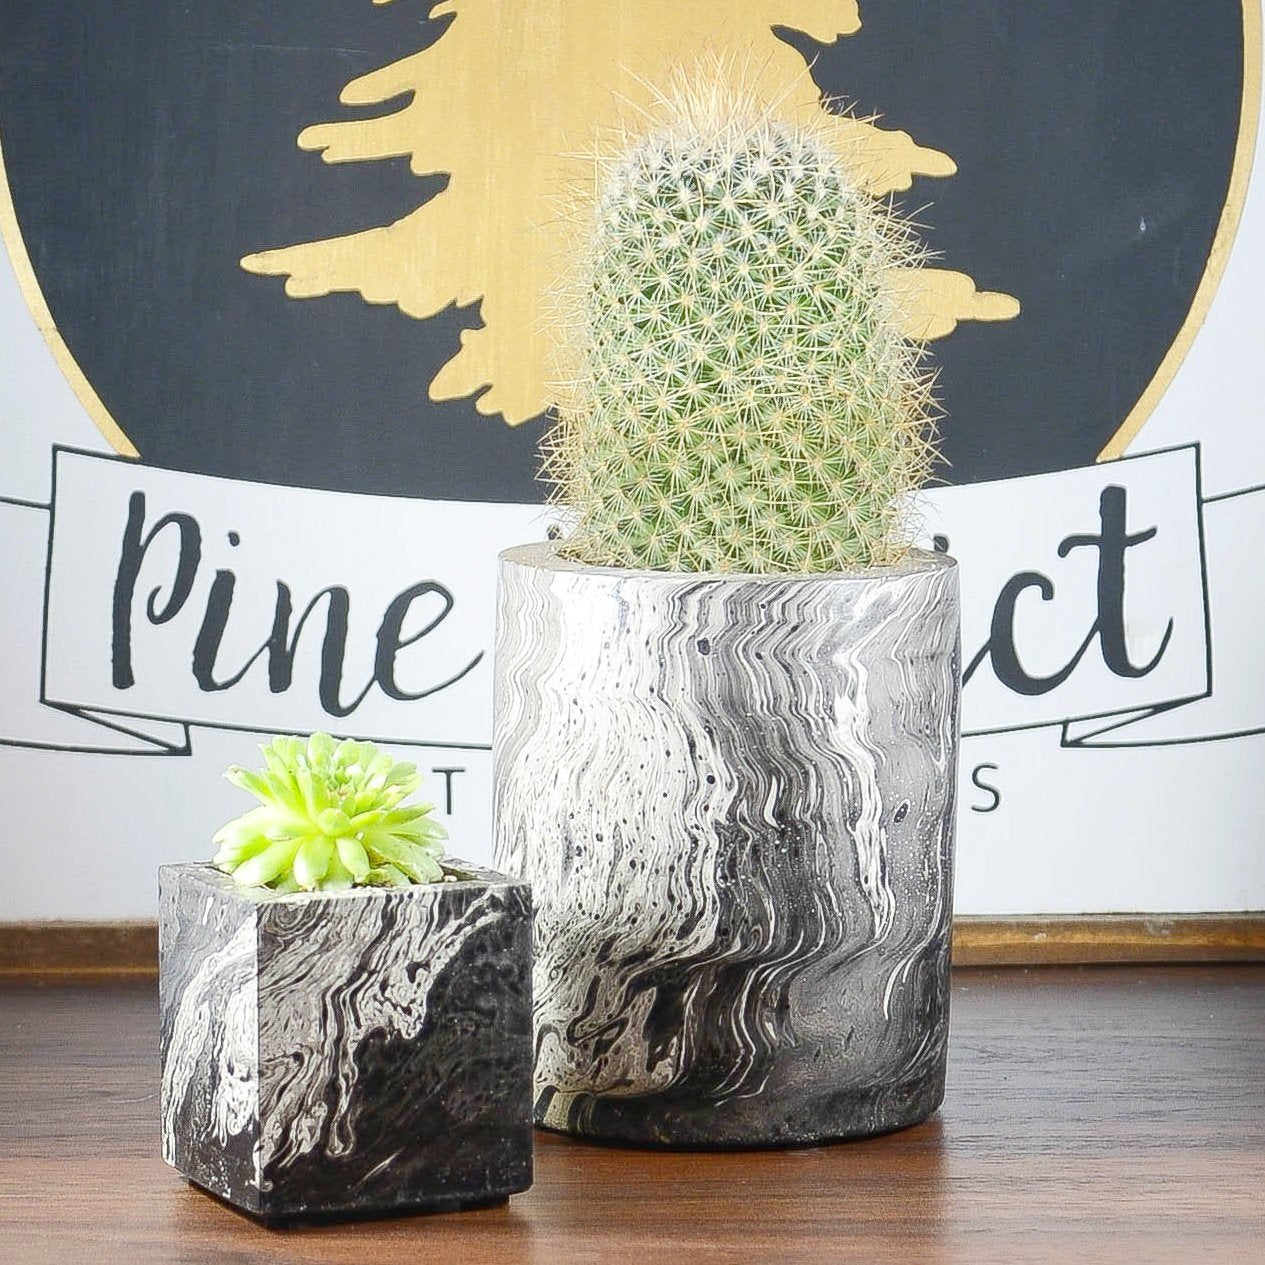 Black Marble Concrete Planter